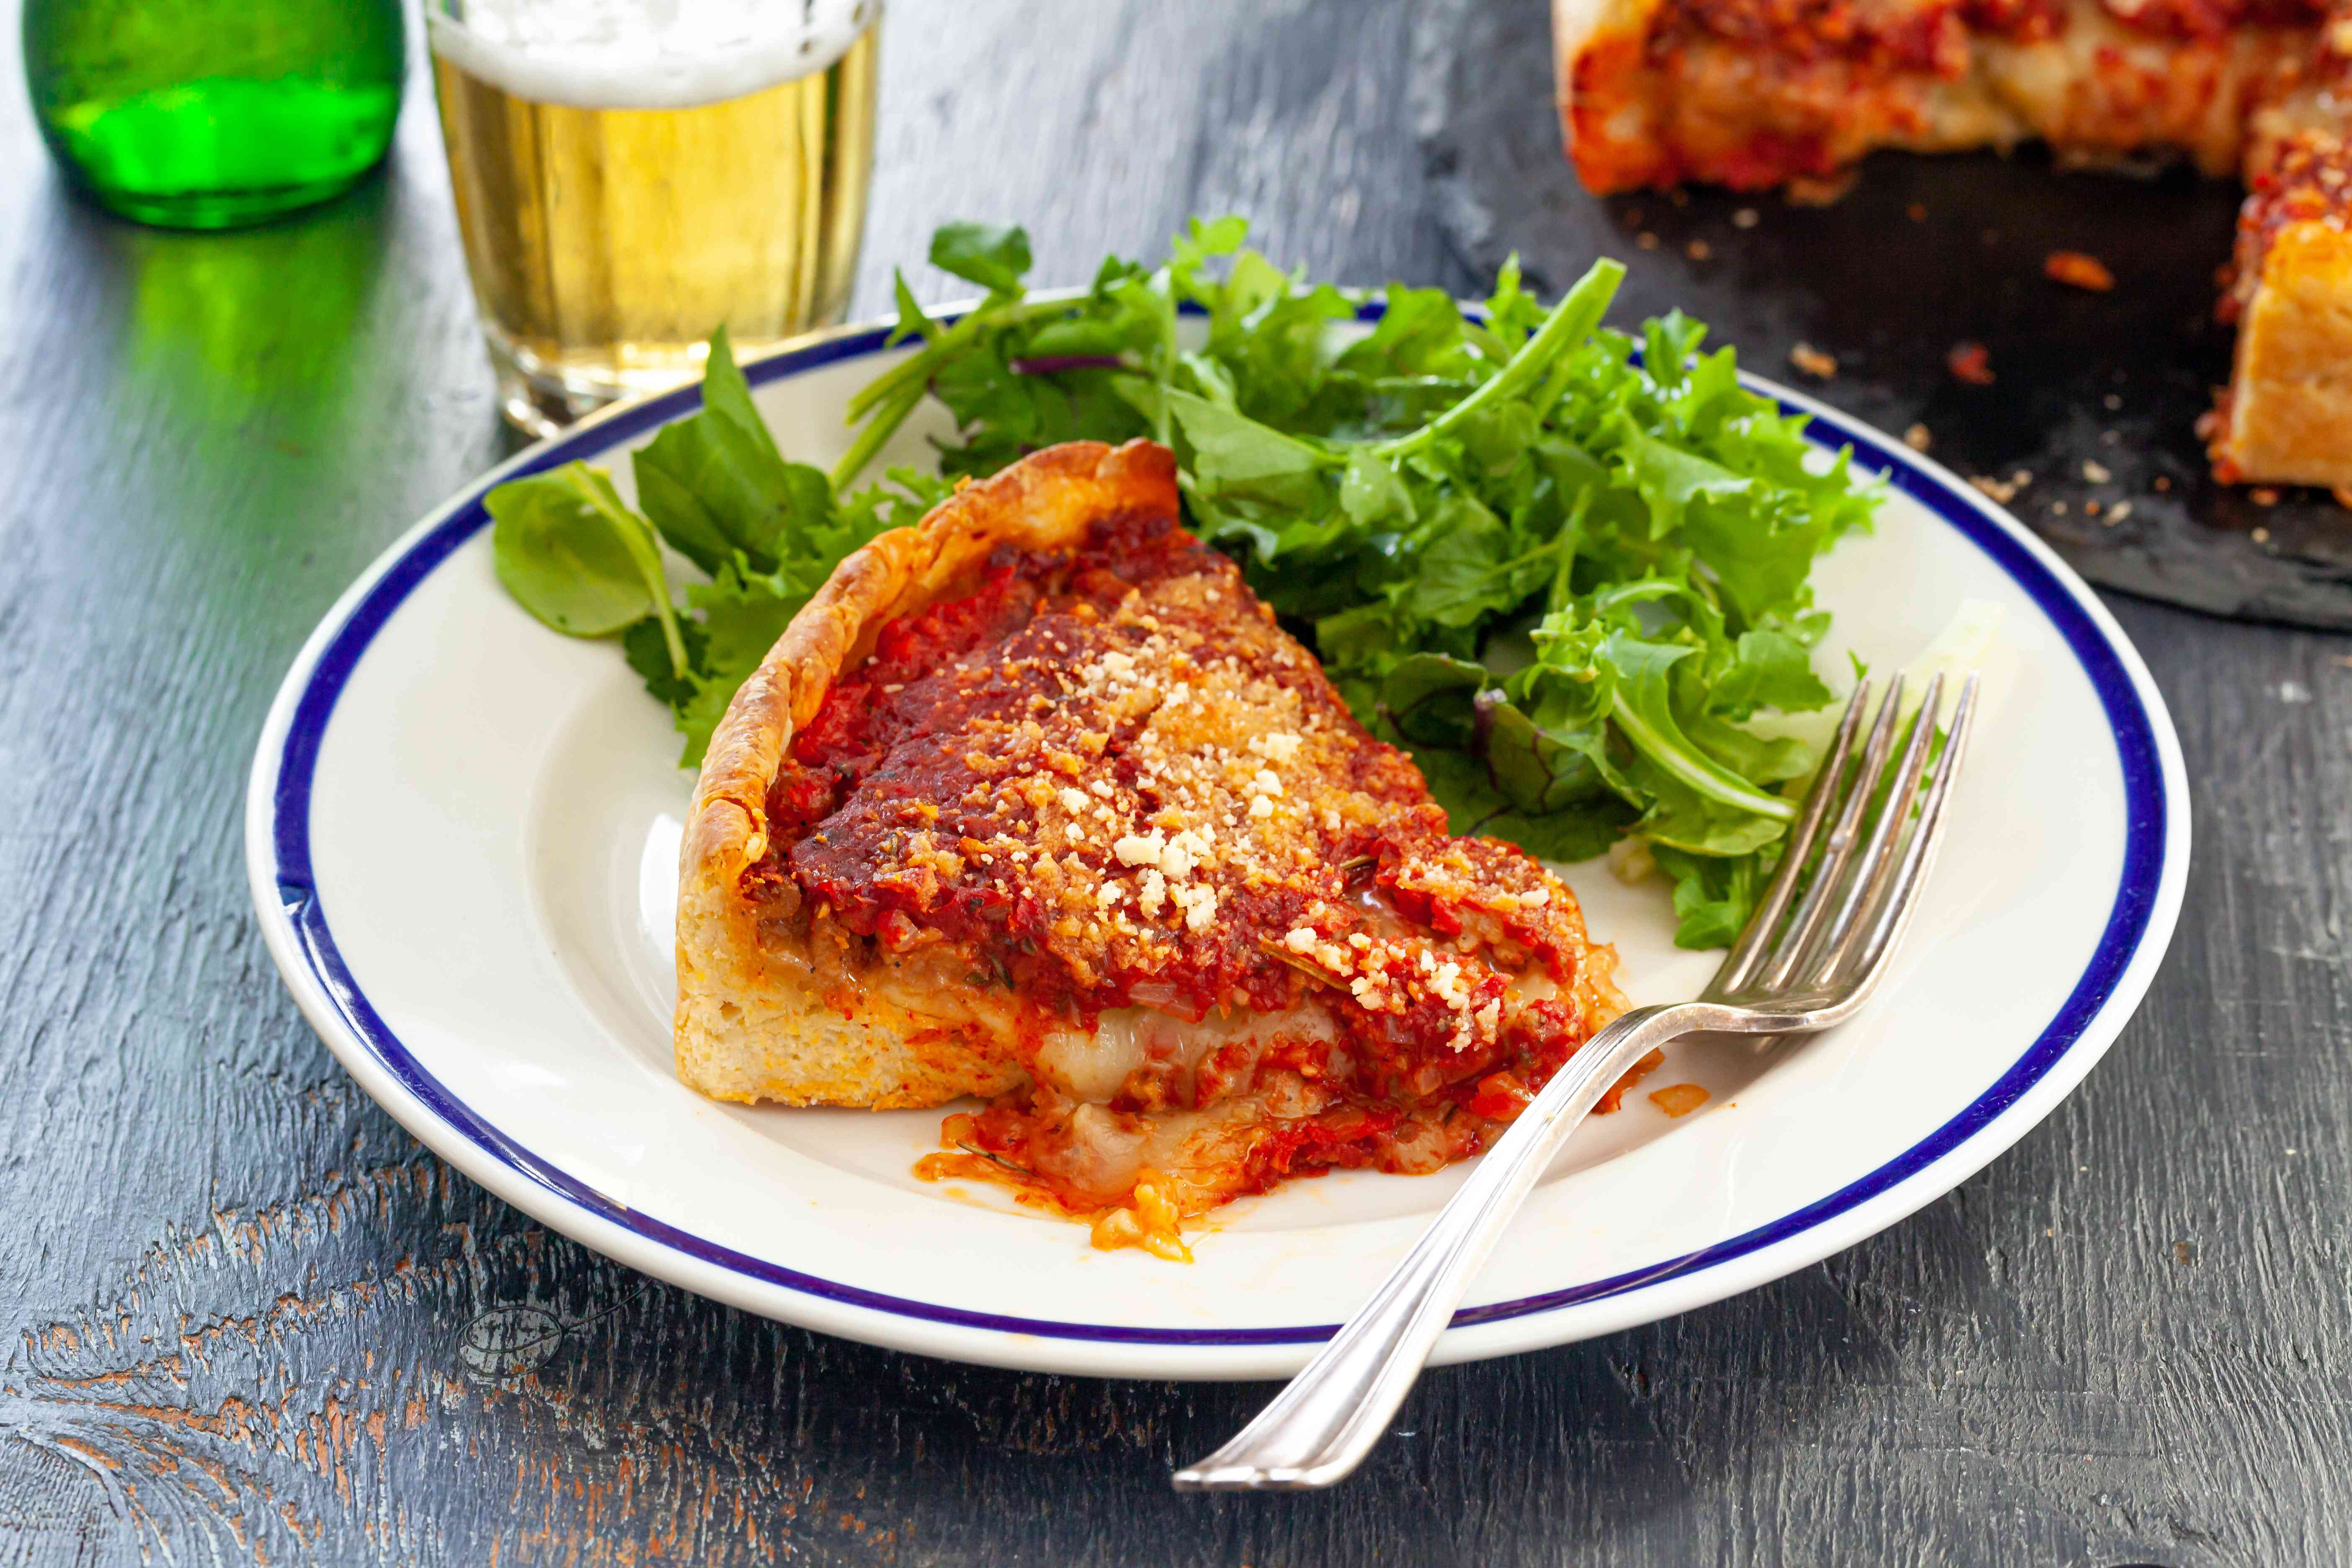 A slice of Italian Sausage Deep Dish Pizza on a plate with a salad.